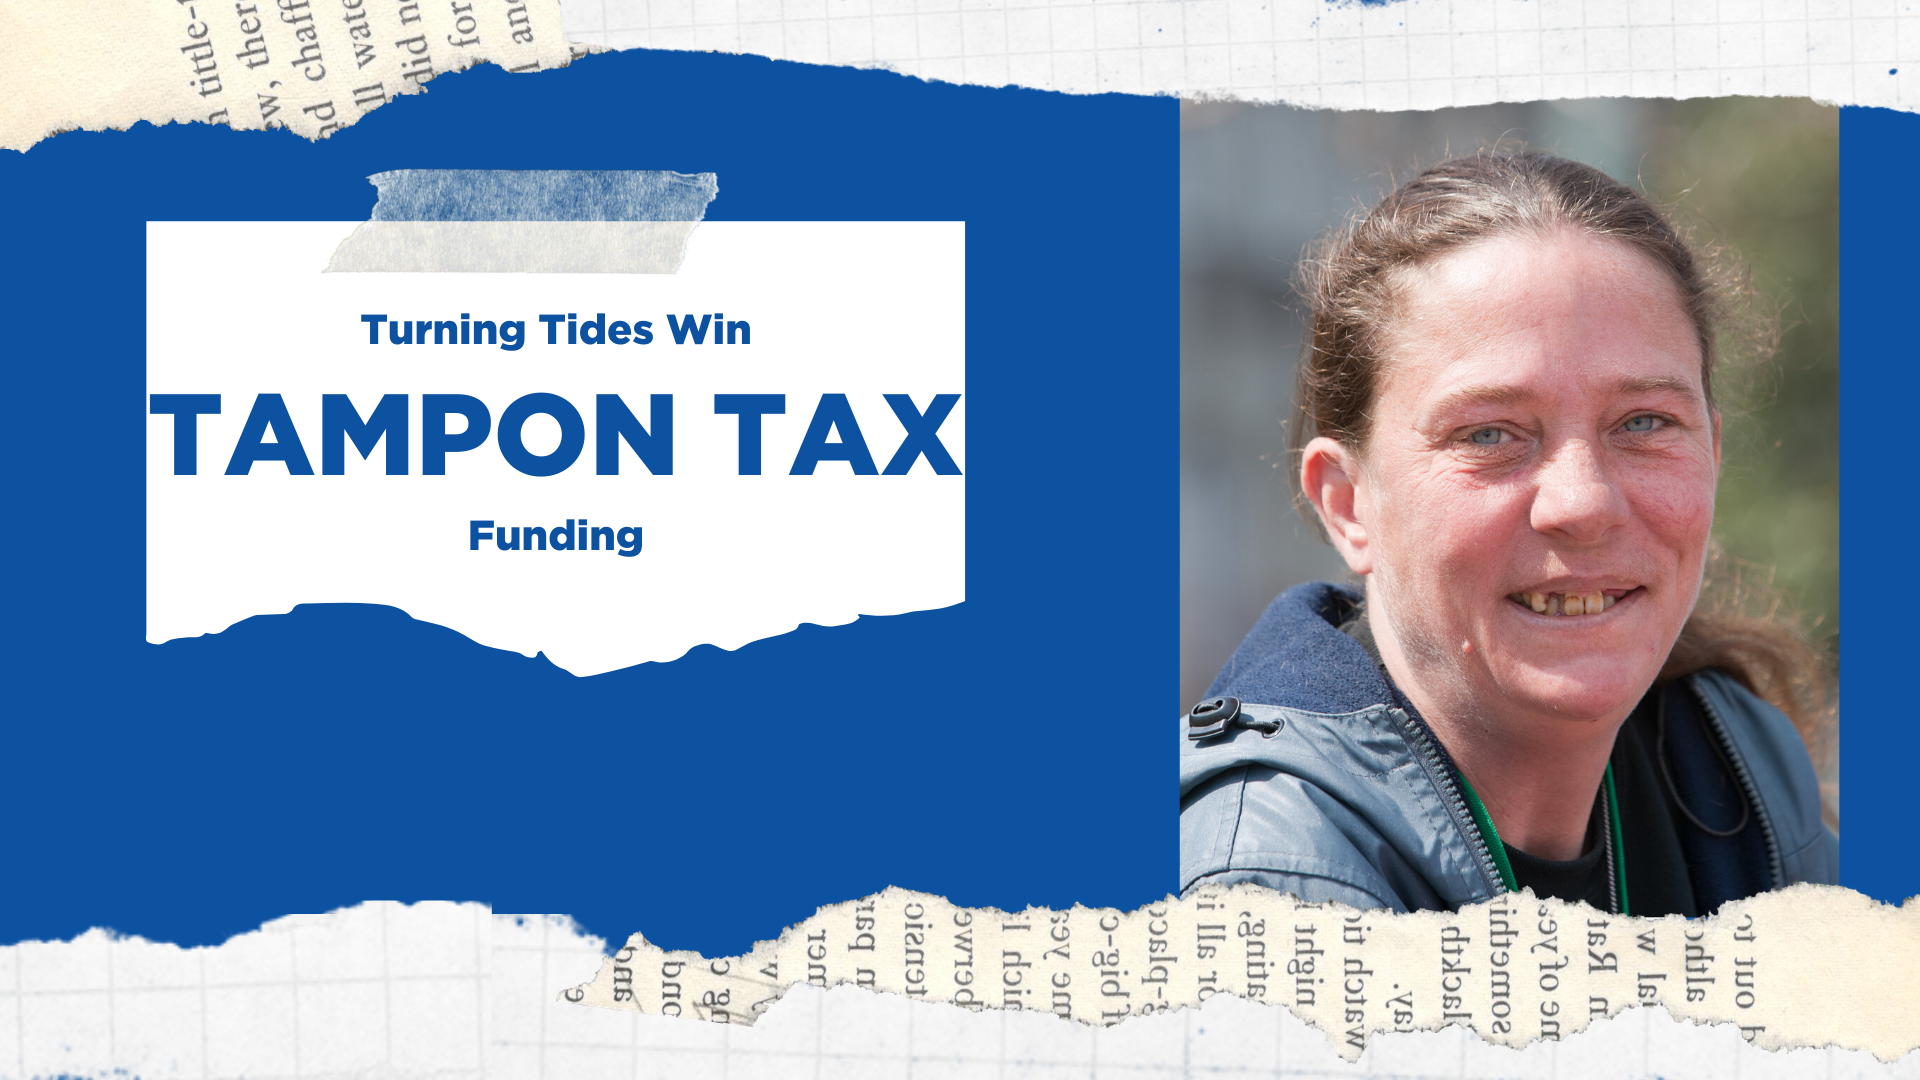 tampon_tax_fund_win_2019_1920